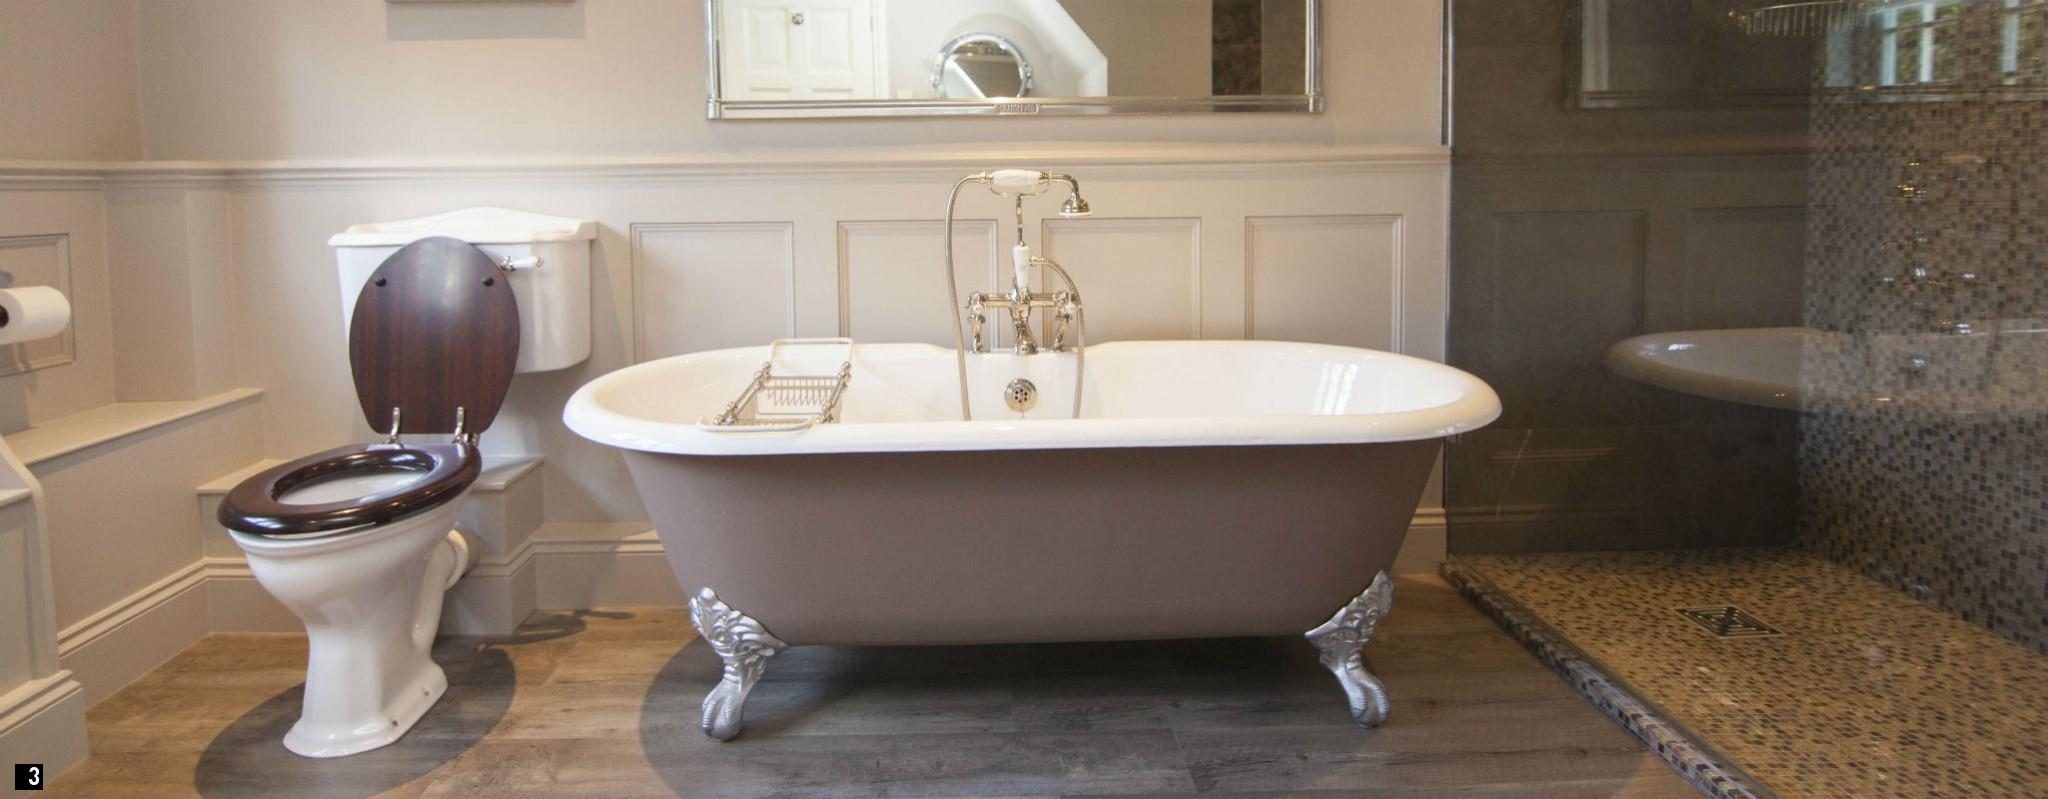 Vintage Roll Top Bath Chadder Wet Room Nickel Fittings